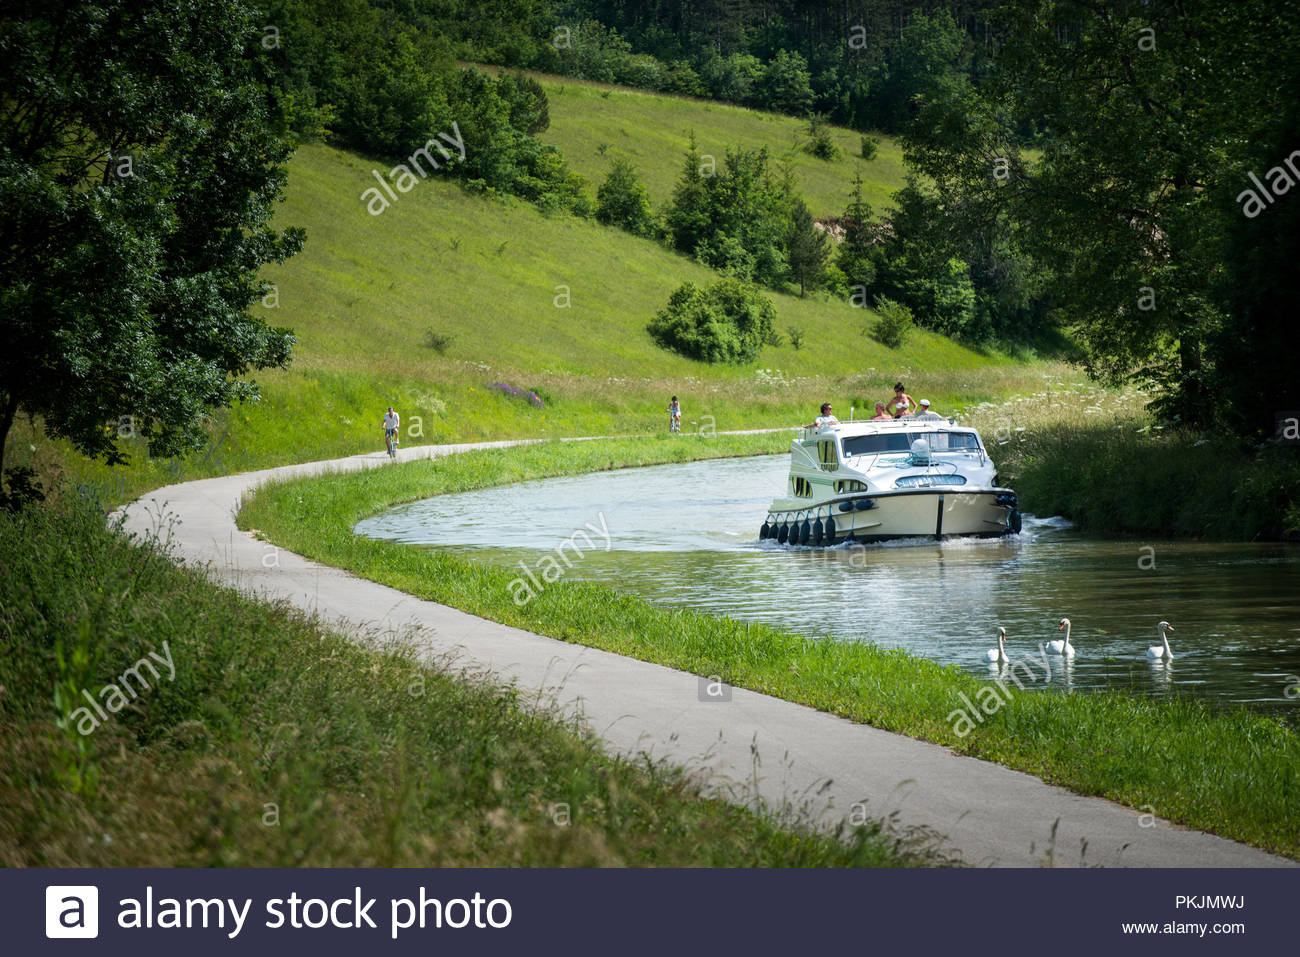 River tourism on the Burgundy Canal ('Canal de Bourgogne') (north-eastern France). Barge and towpath - Stock Image